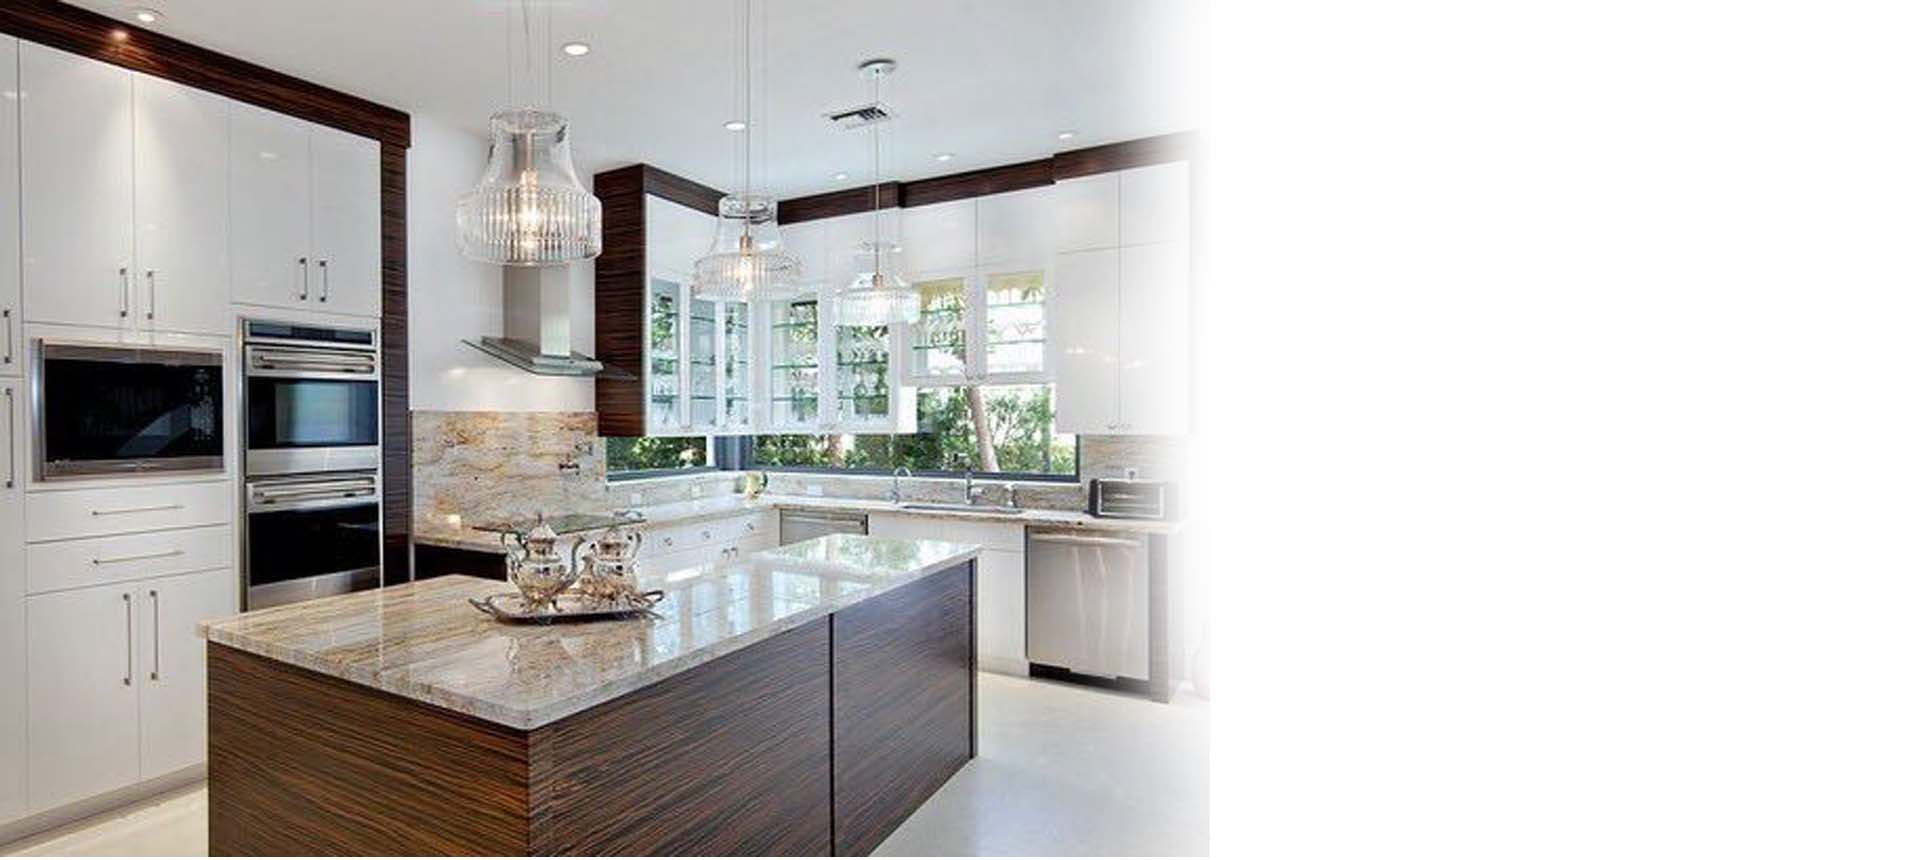 Attractive Kitchen Remodeling Calgary Picture Collection - Home ...